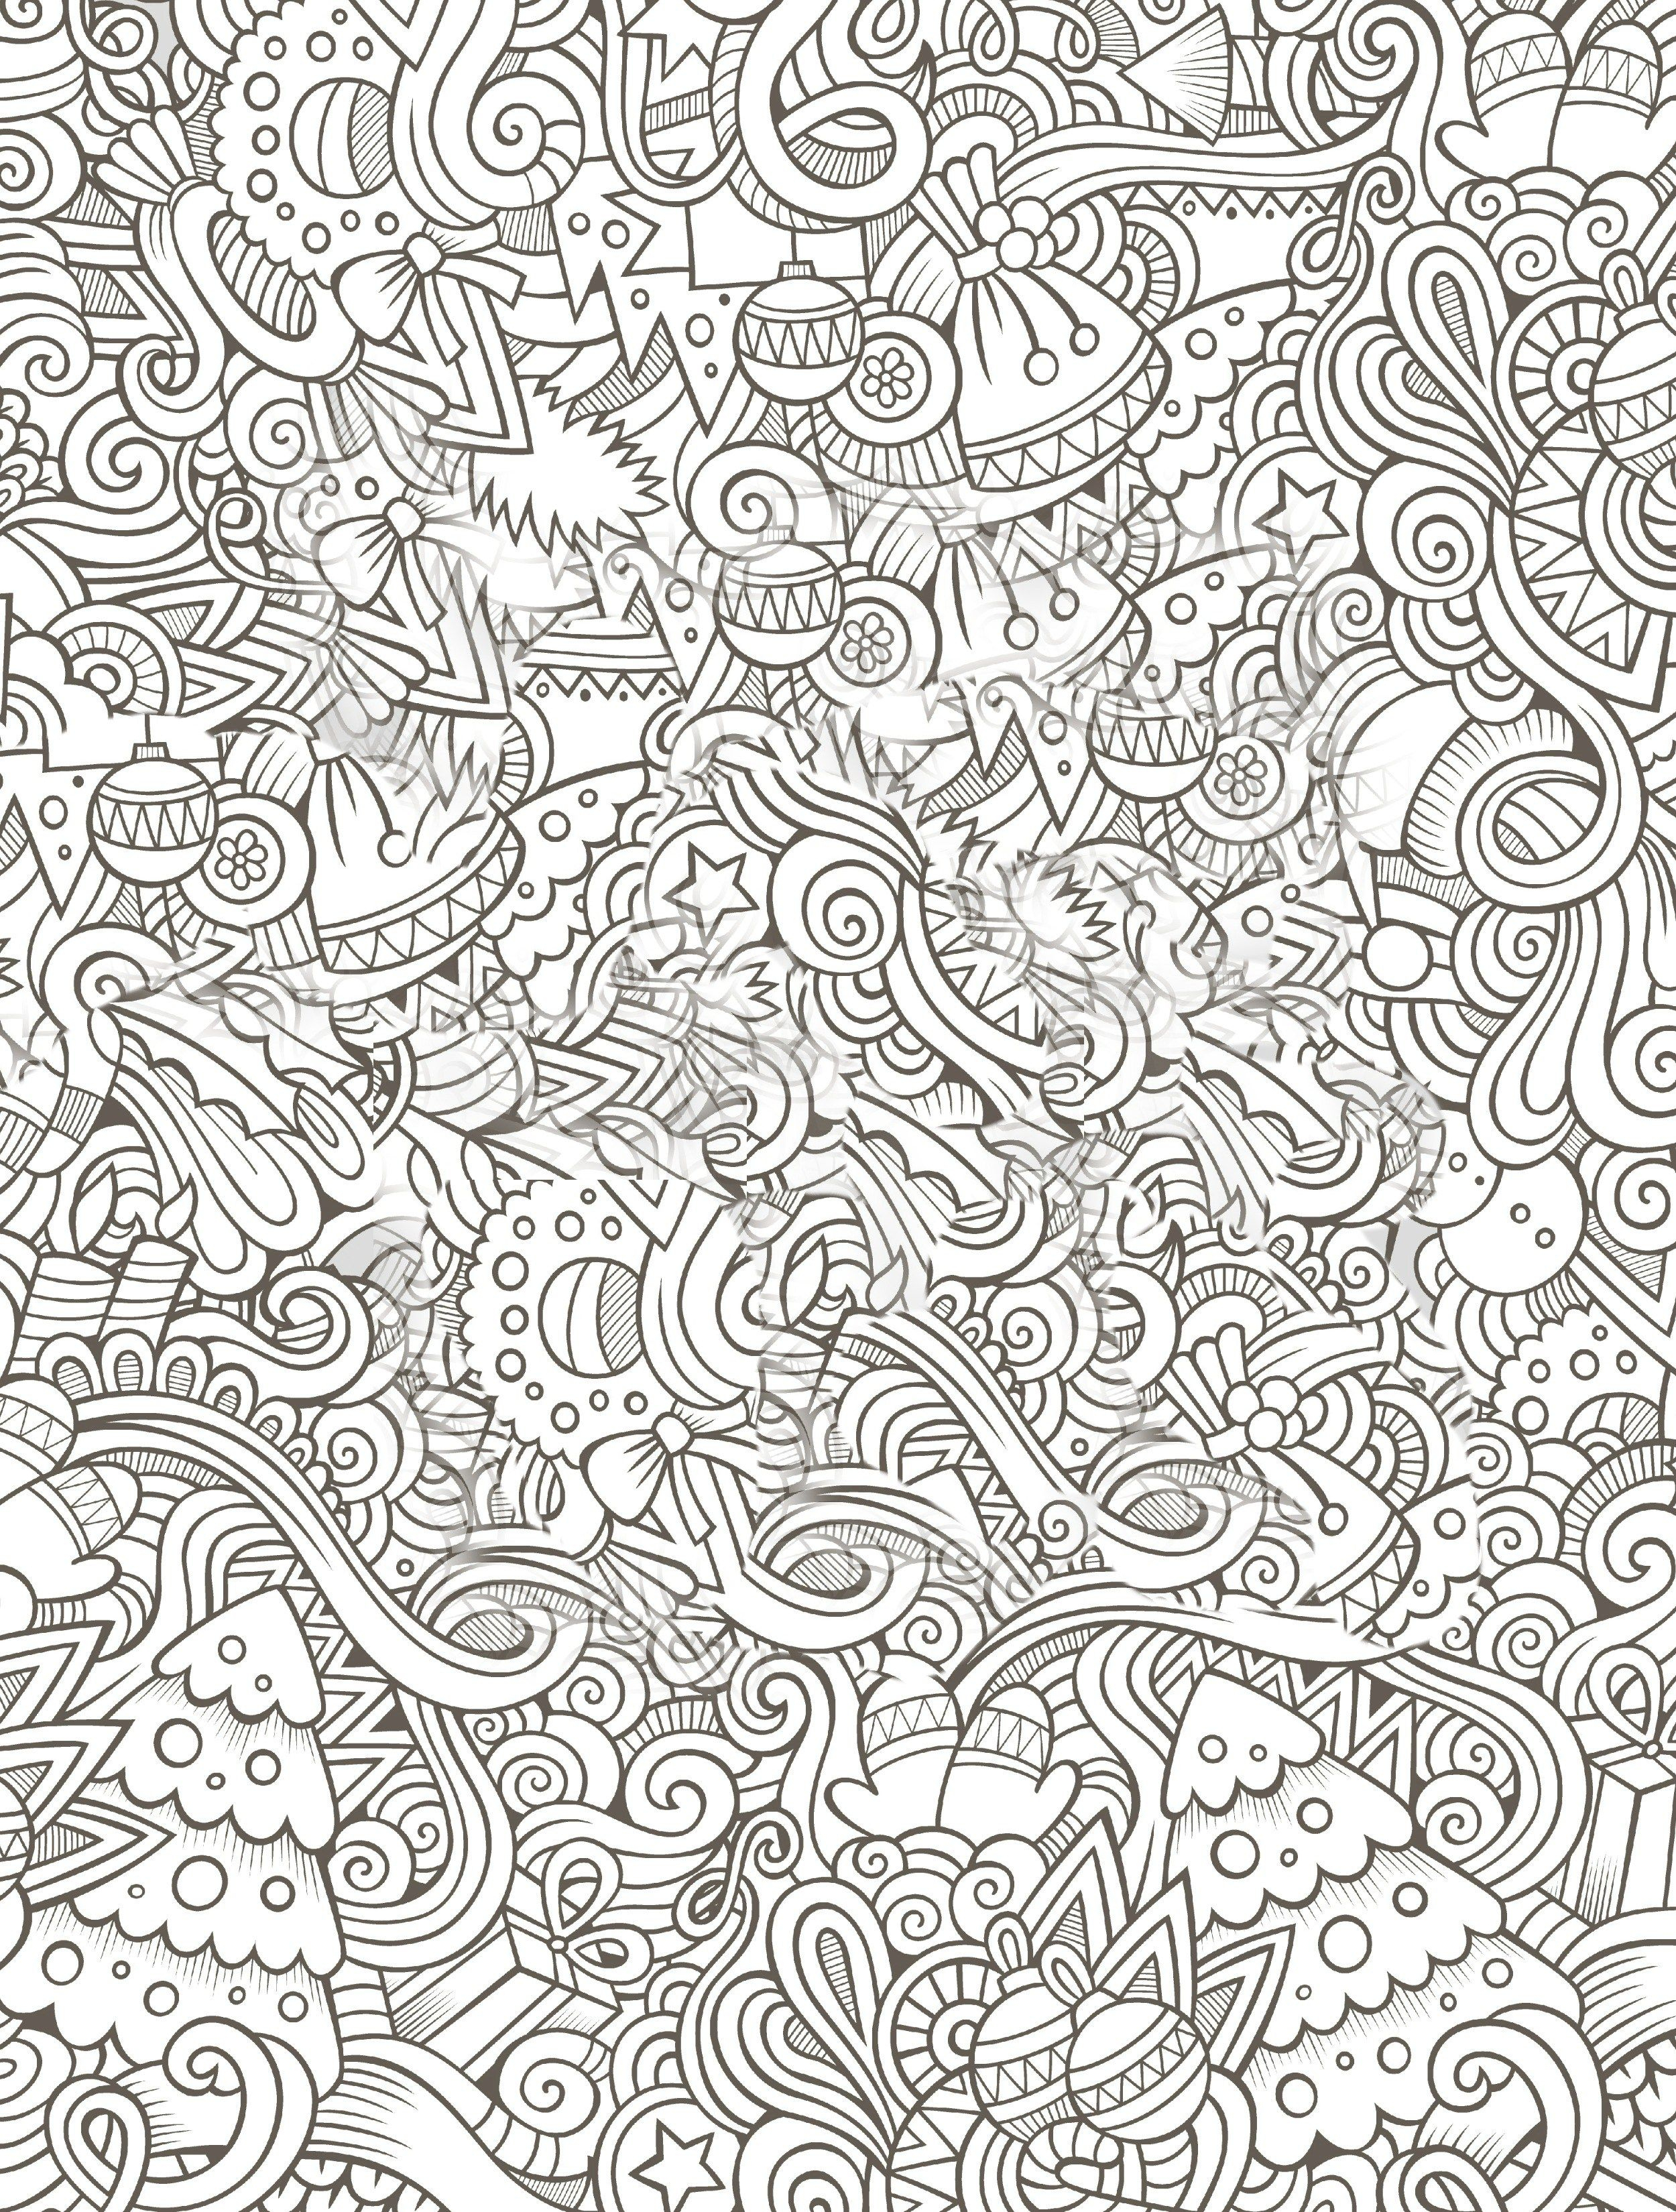 10 Free Printable Holiday Adult Coloring Pages | Free Coloring Pages - Free Printable Holiday Coloring Pages